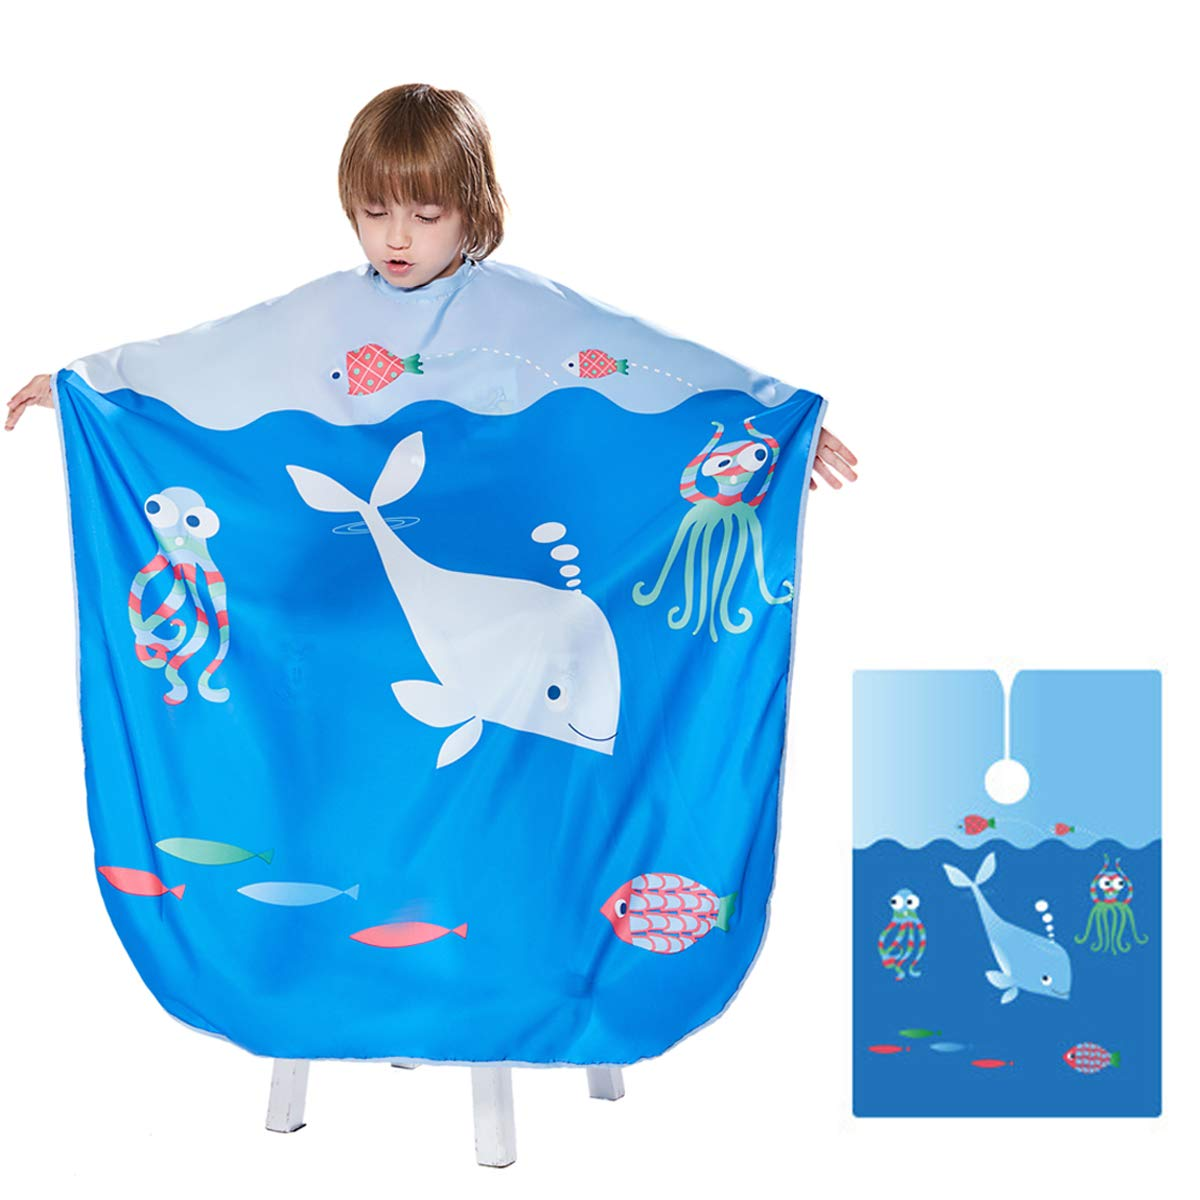 Barber Cape for Kids - Ymnenvxo Professional Hair Salon Cape with Adjustable Snap Closure Waterproof Hair Cutting Cape for Salon and Home - 51 x 36 inches (Ocean World) by Ymnenvxo